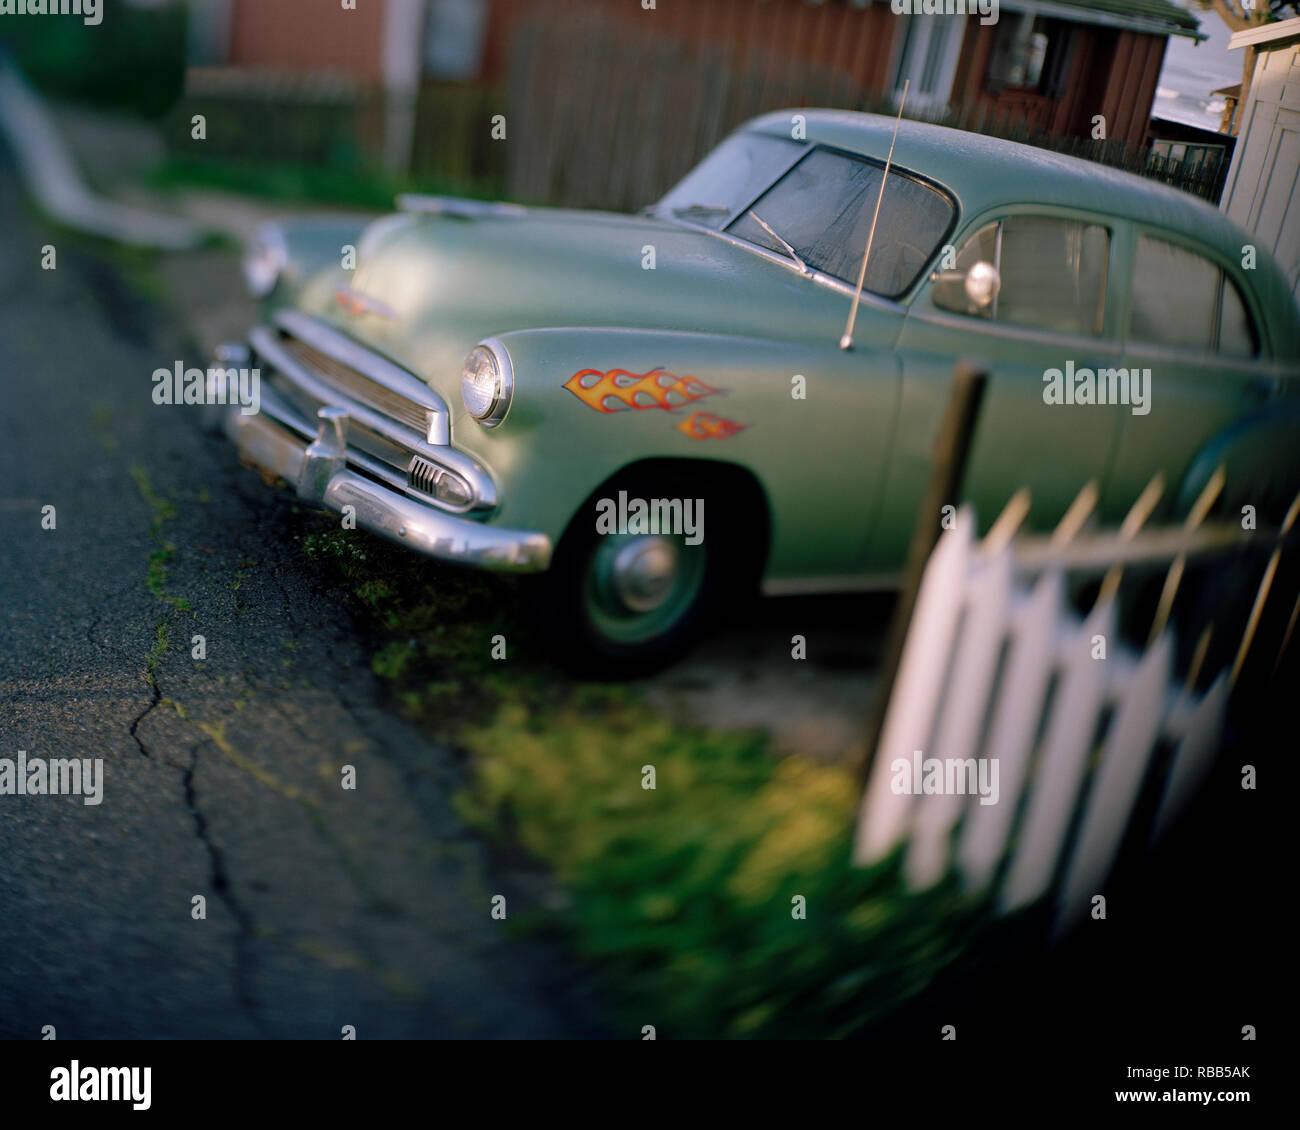 Vintage car parked in a driveway - Stock Image